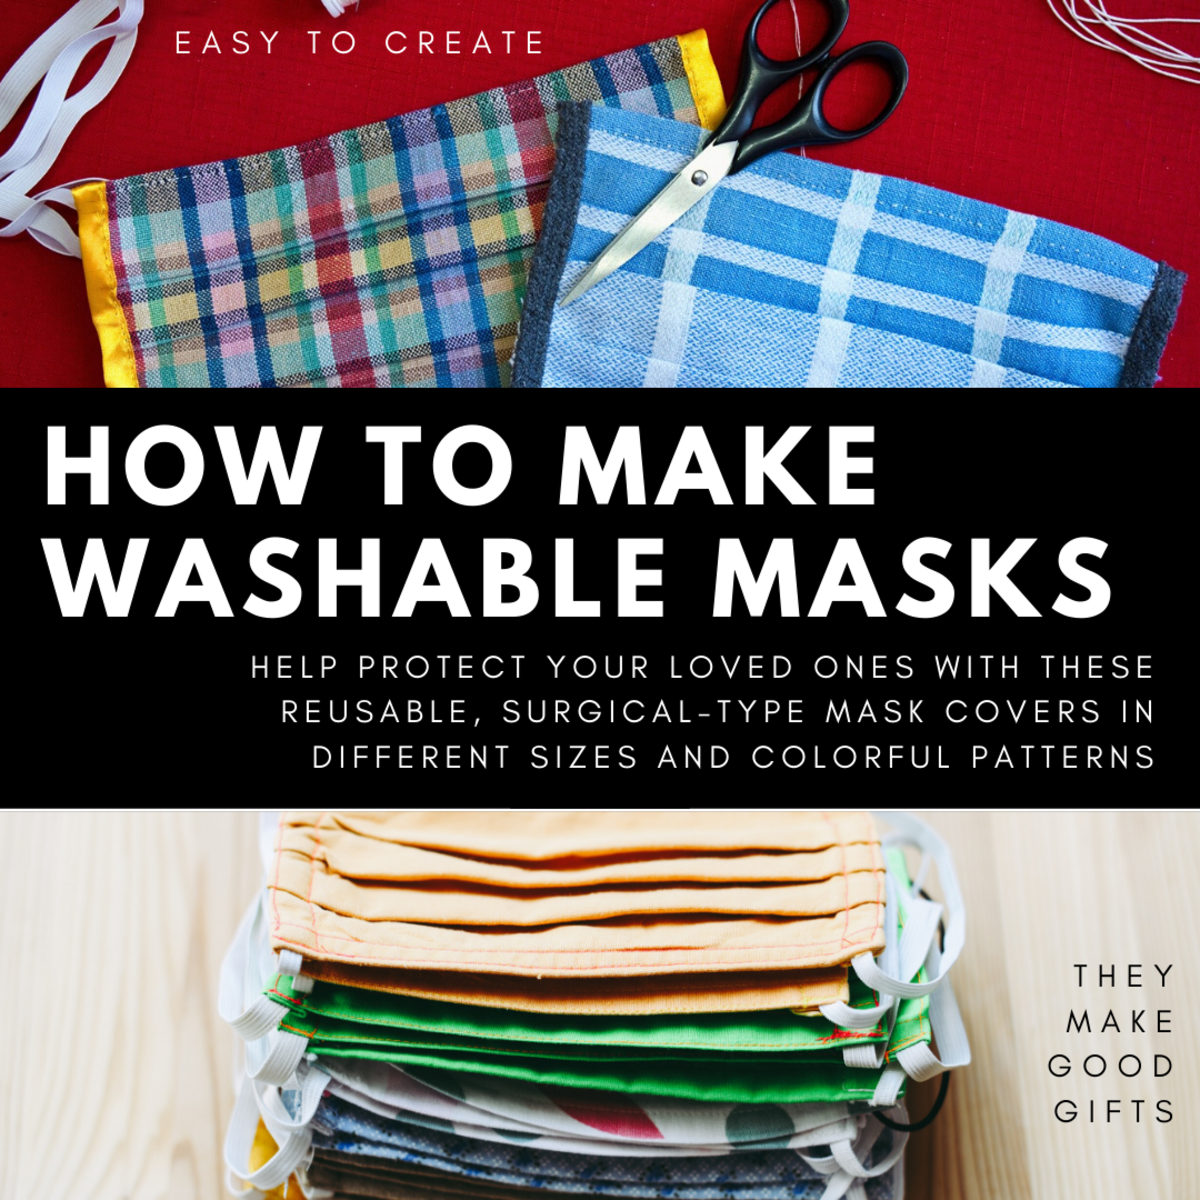 How to Make a Washable, Surgical-Type Mask Cover With Multi-Sized Patterns